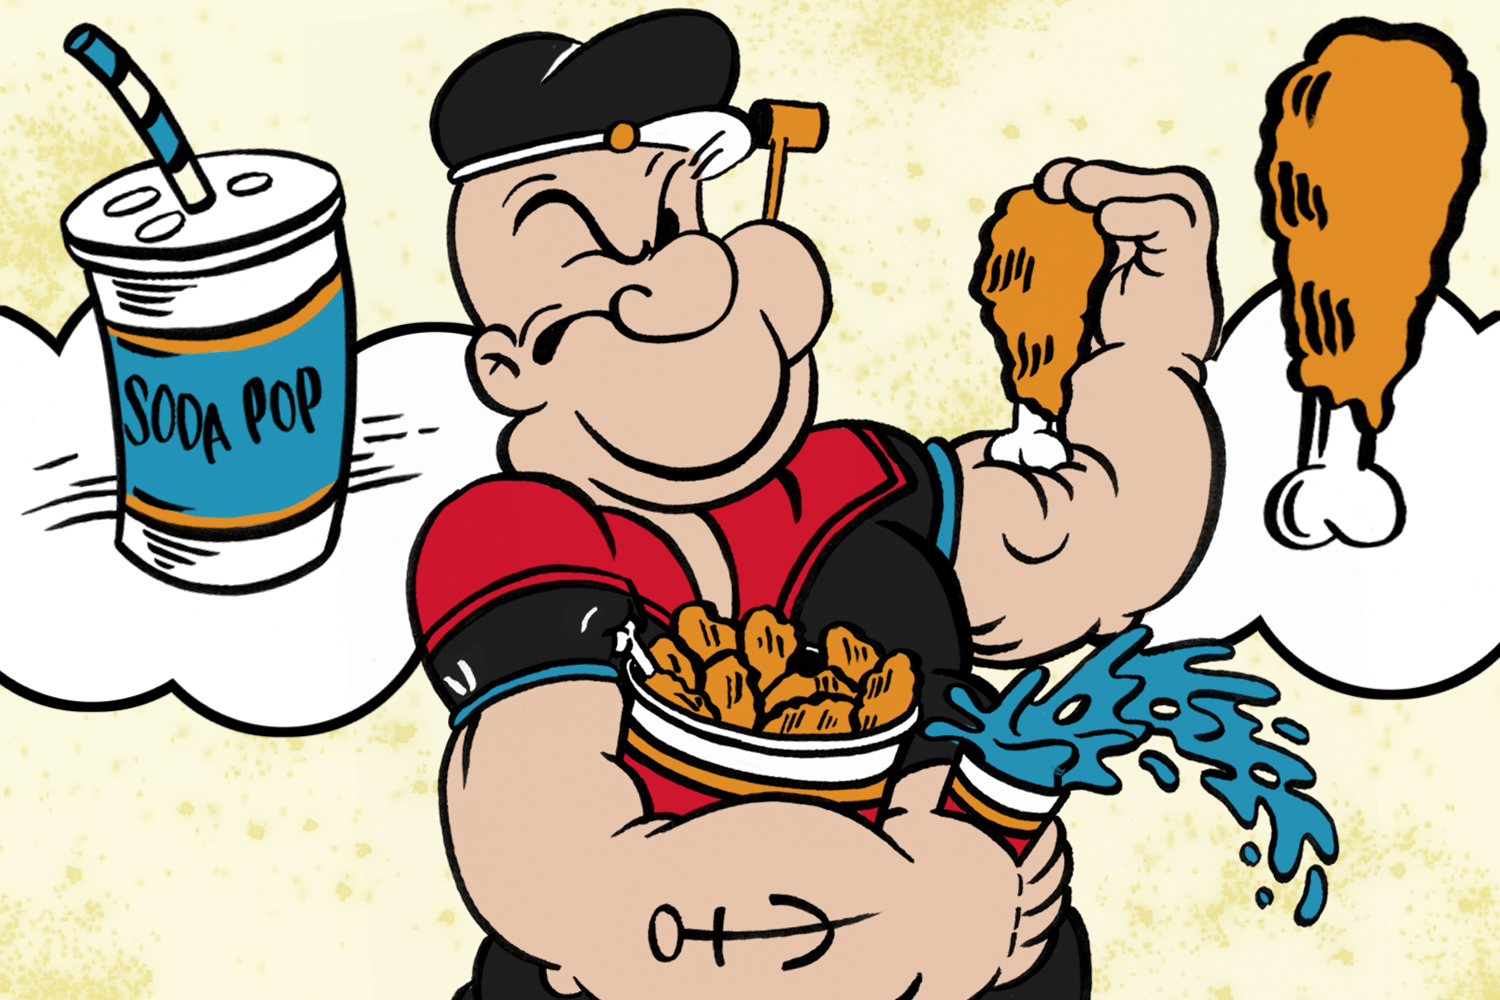 Popeye Hd Wallpapers Desktop Wallpaper Popeye The Sailor Man